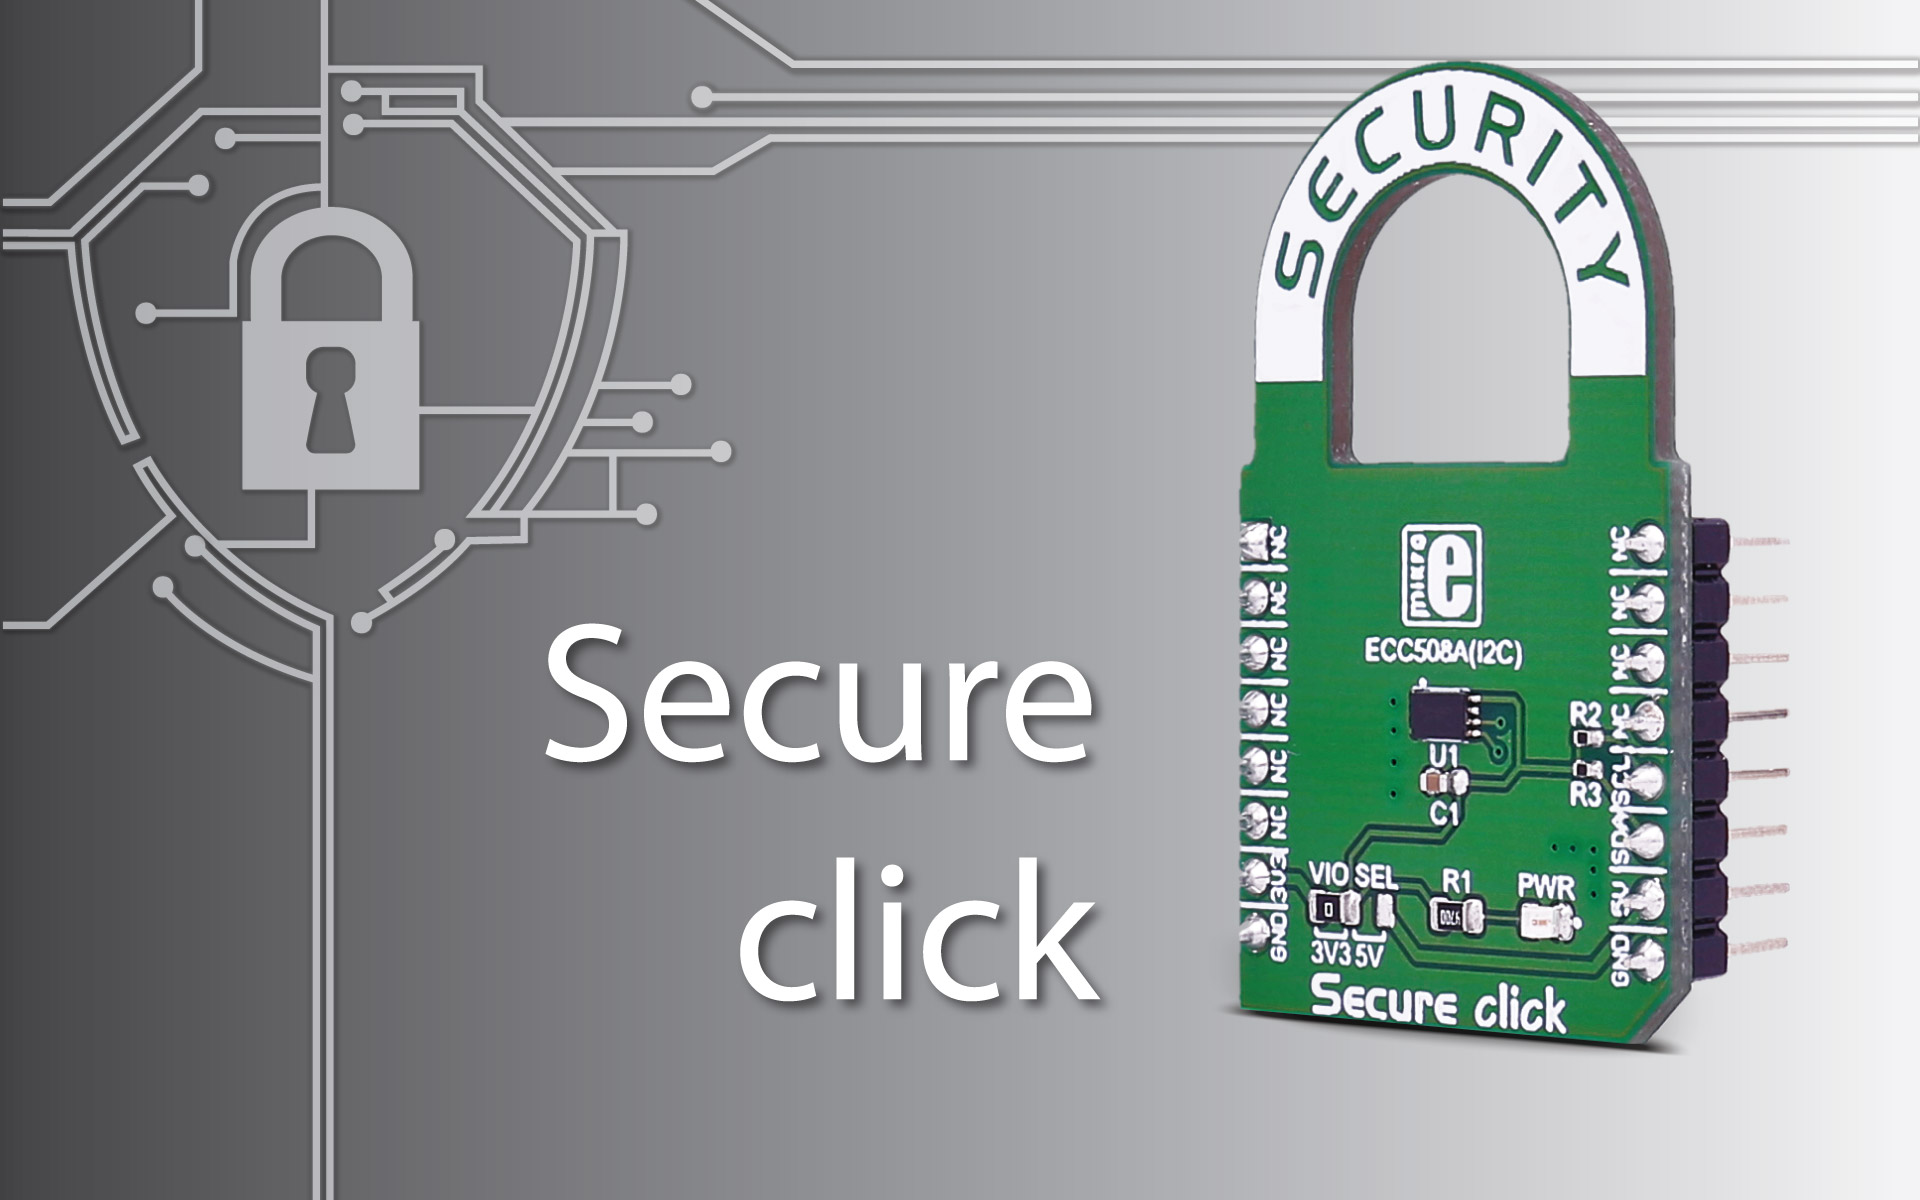 Secure click – storage of up to 16 keys